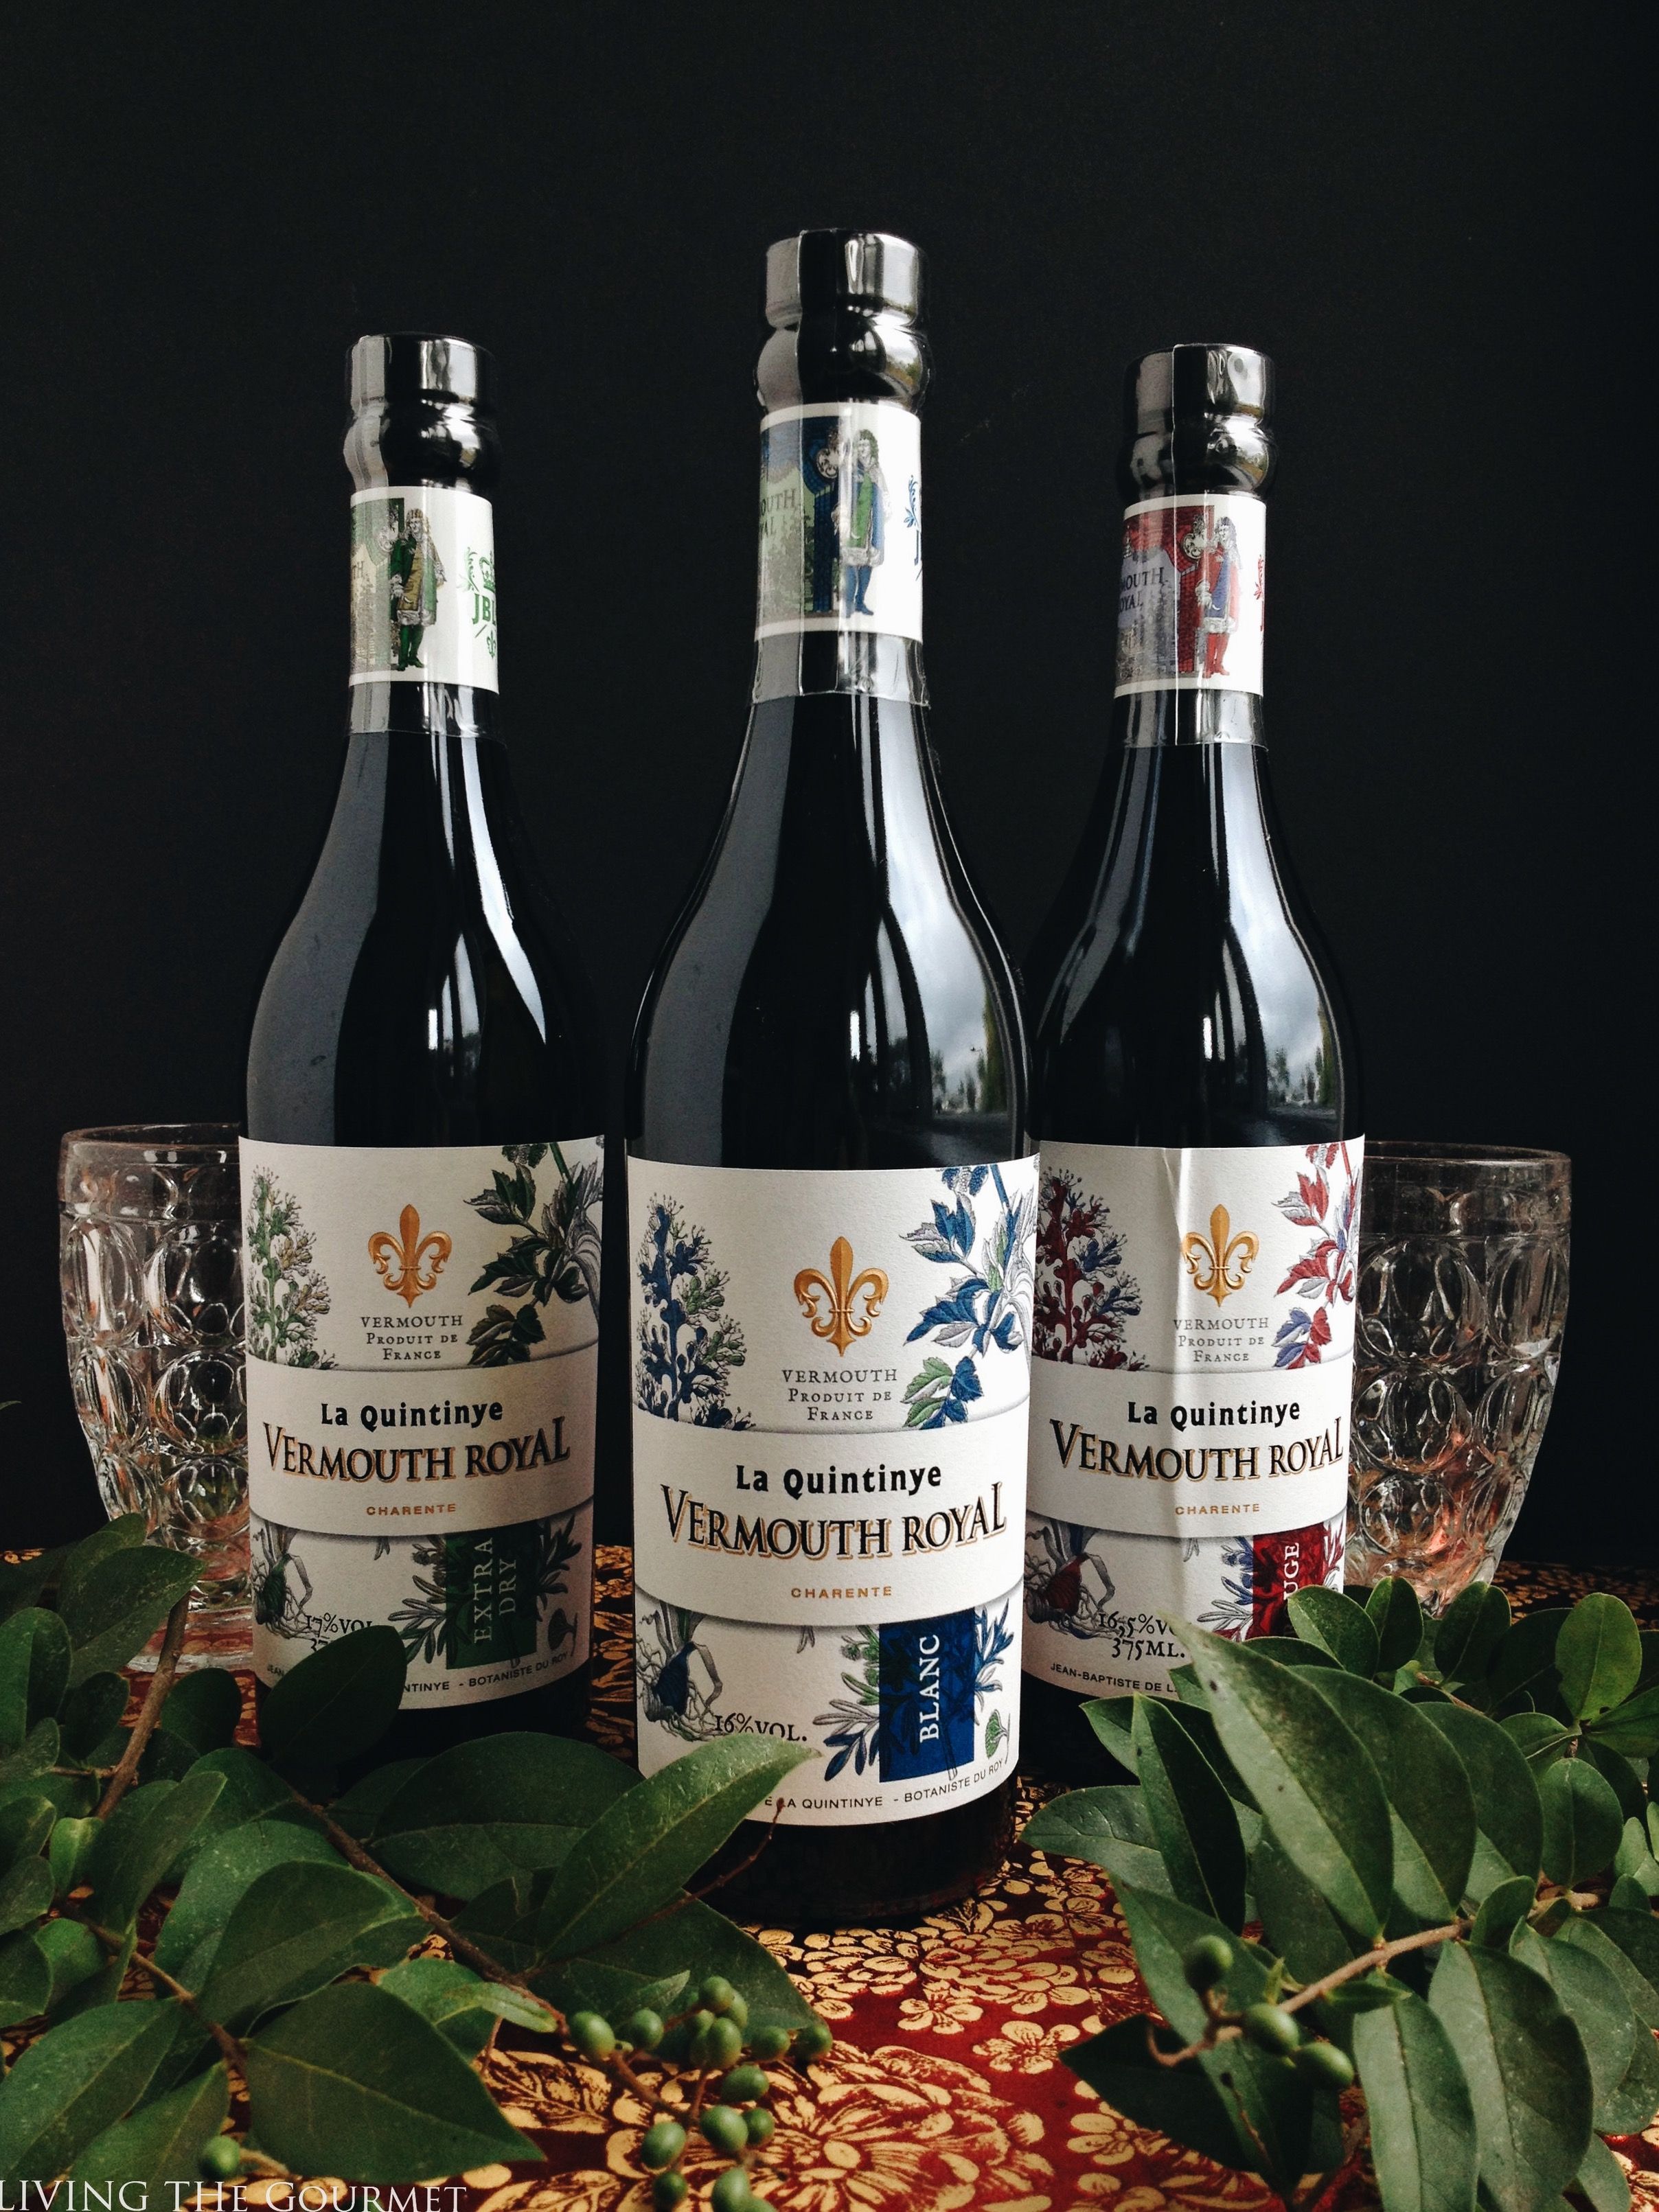 Living the Gourmet: La Quintinye Vermouth Royal